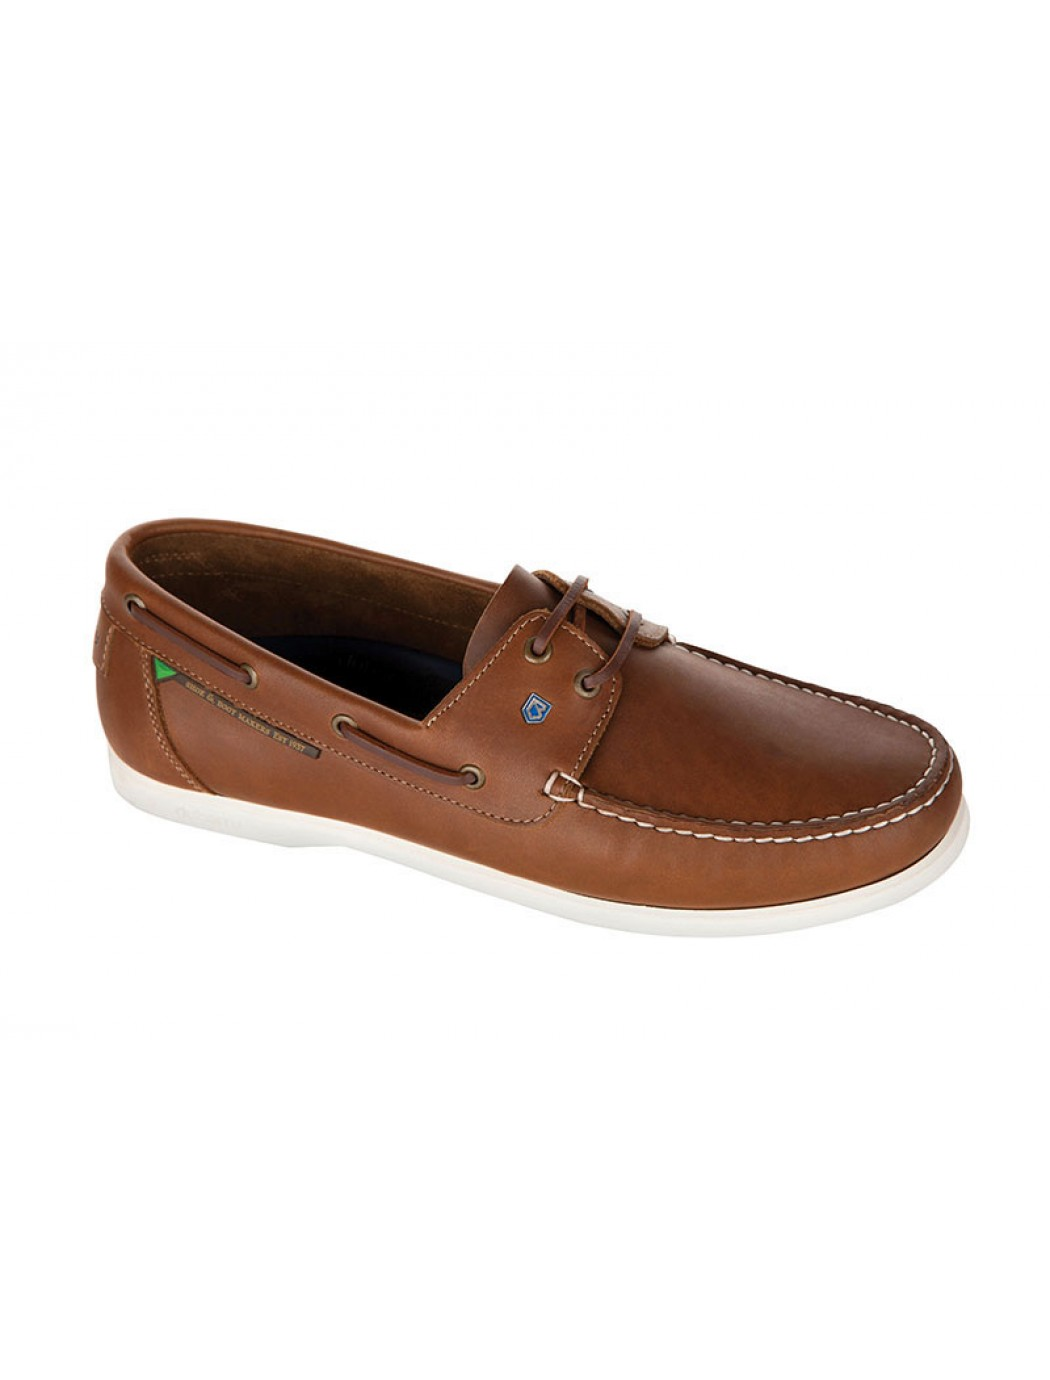 windward-mens-decks-brown